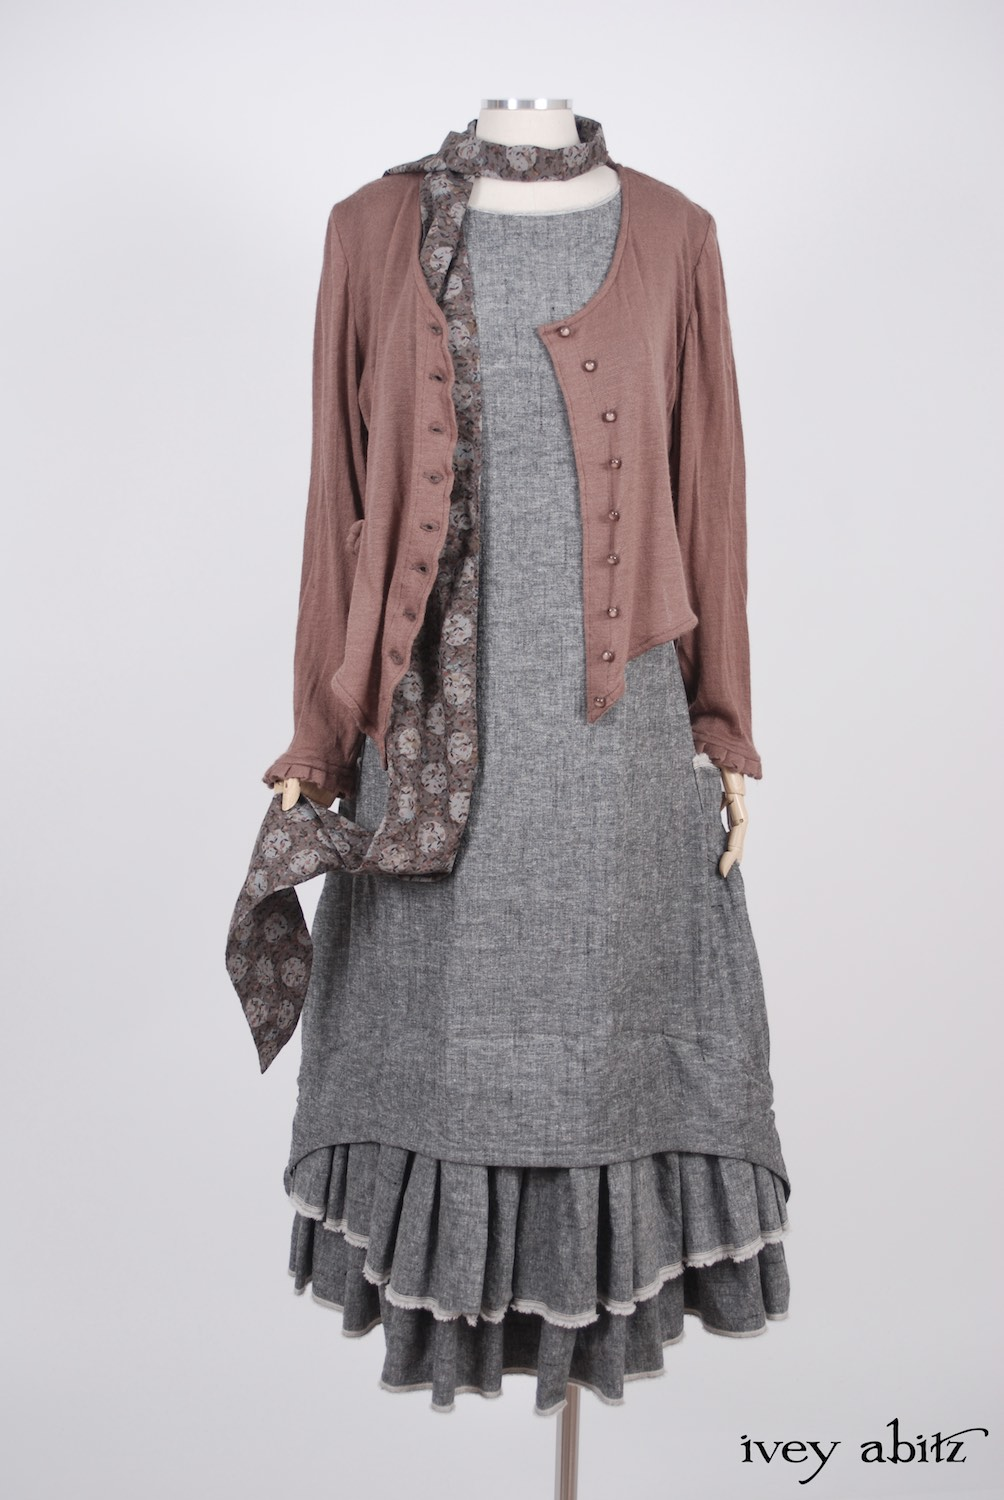 Ivey Abitz - Canterbury Cardigan in Blushed Cashmere Knit  - Blanchefleur Sash in Flock and Moon Cotton Voile  - Limited Edition Trelawny Frock in Blackbird/Dove Rustic Weave, High Water Length